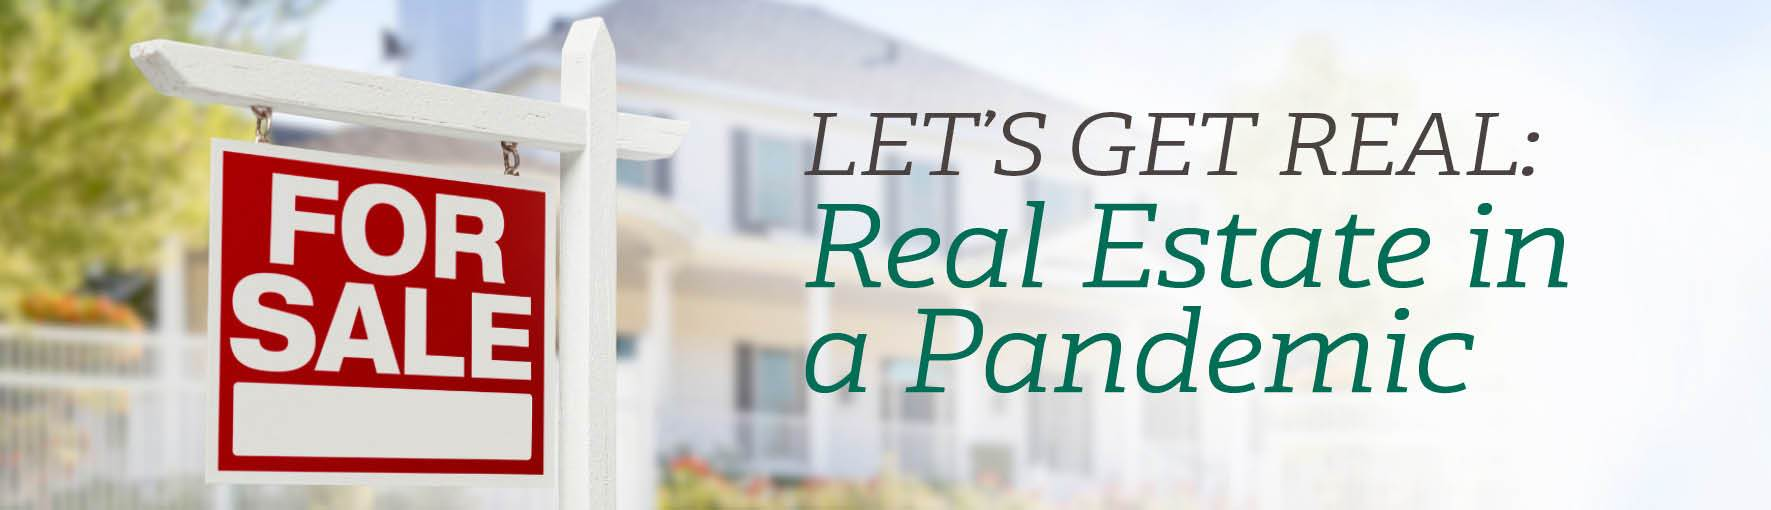 Let's Get Real: Real Estate in a Pandemic